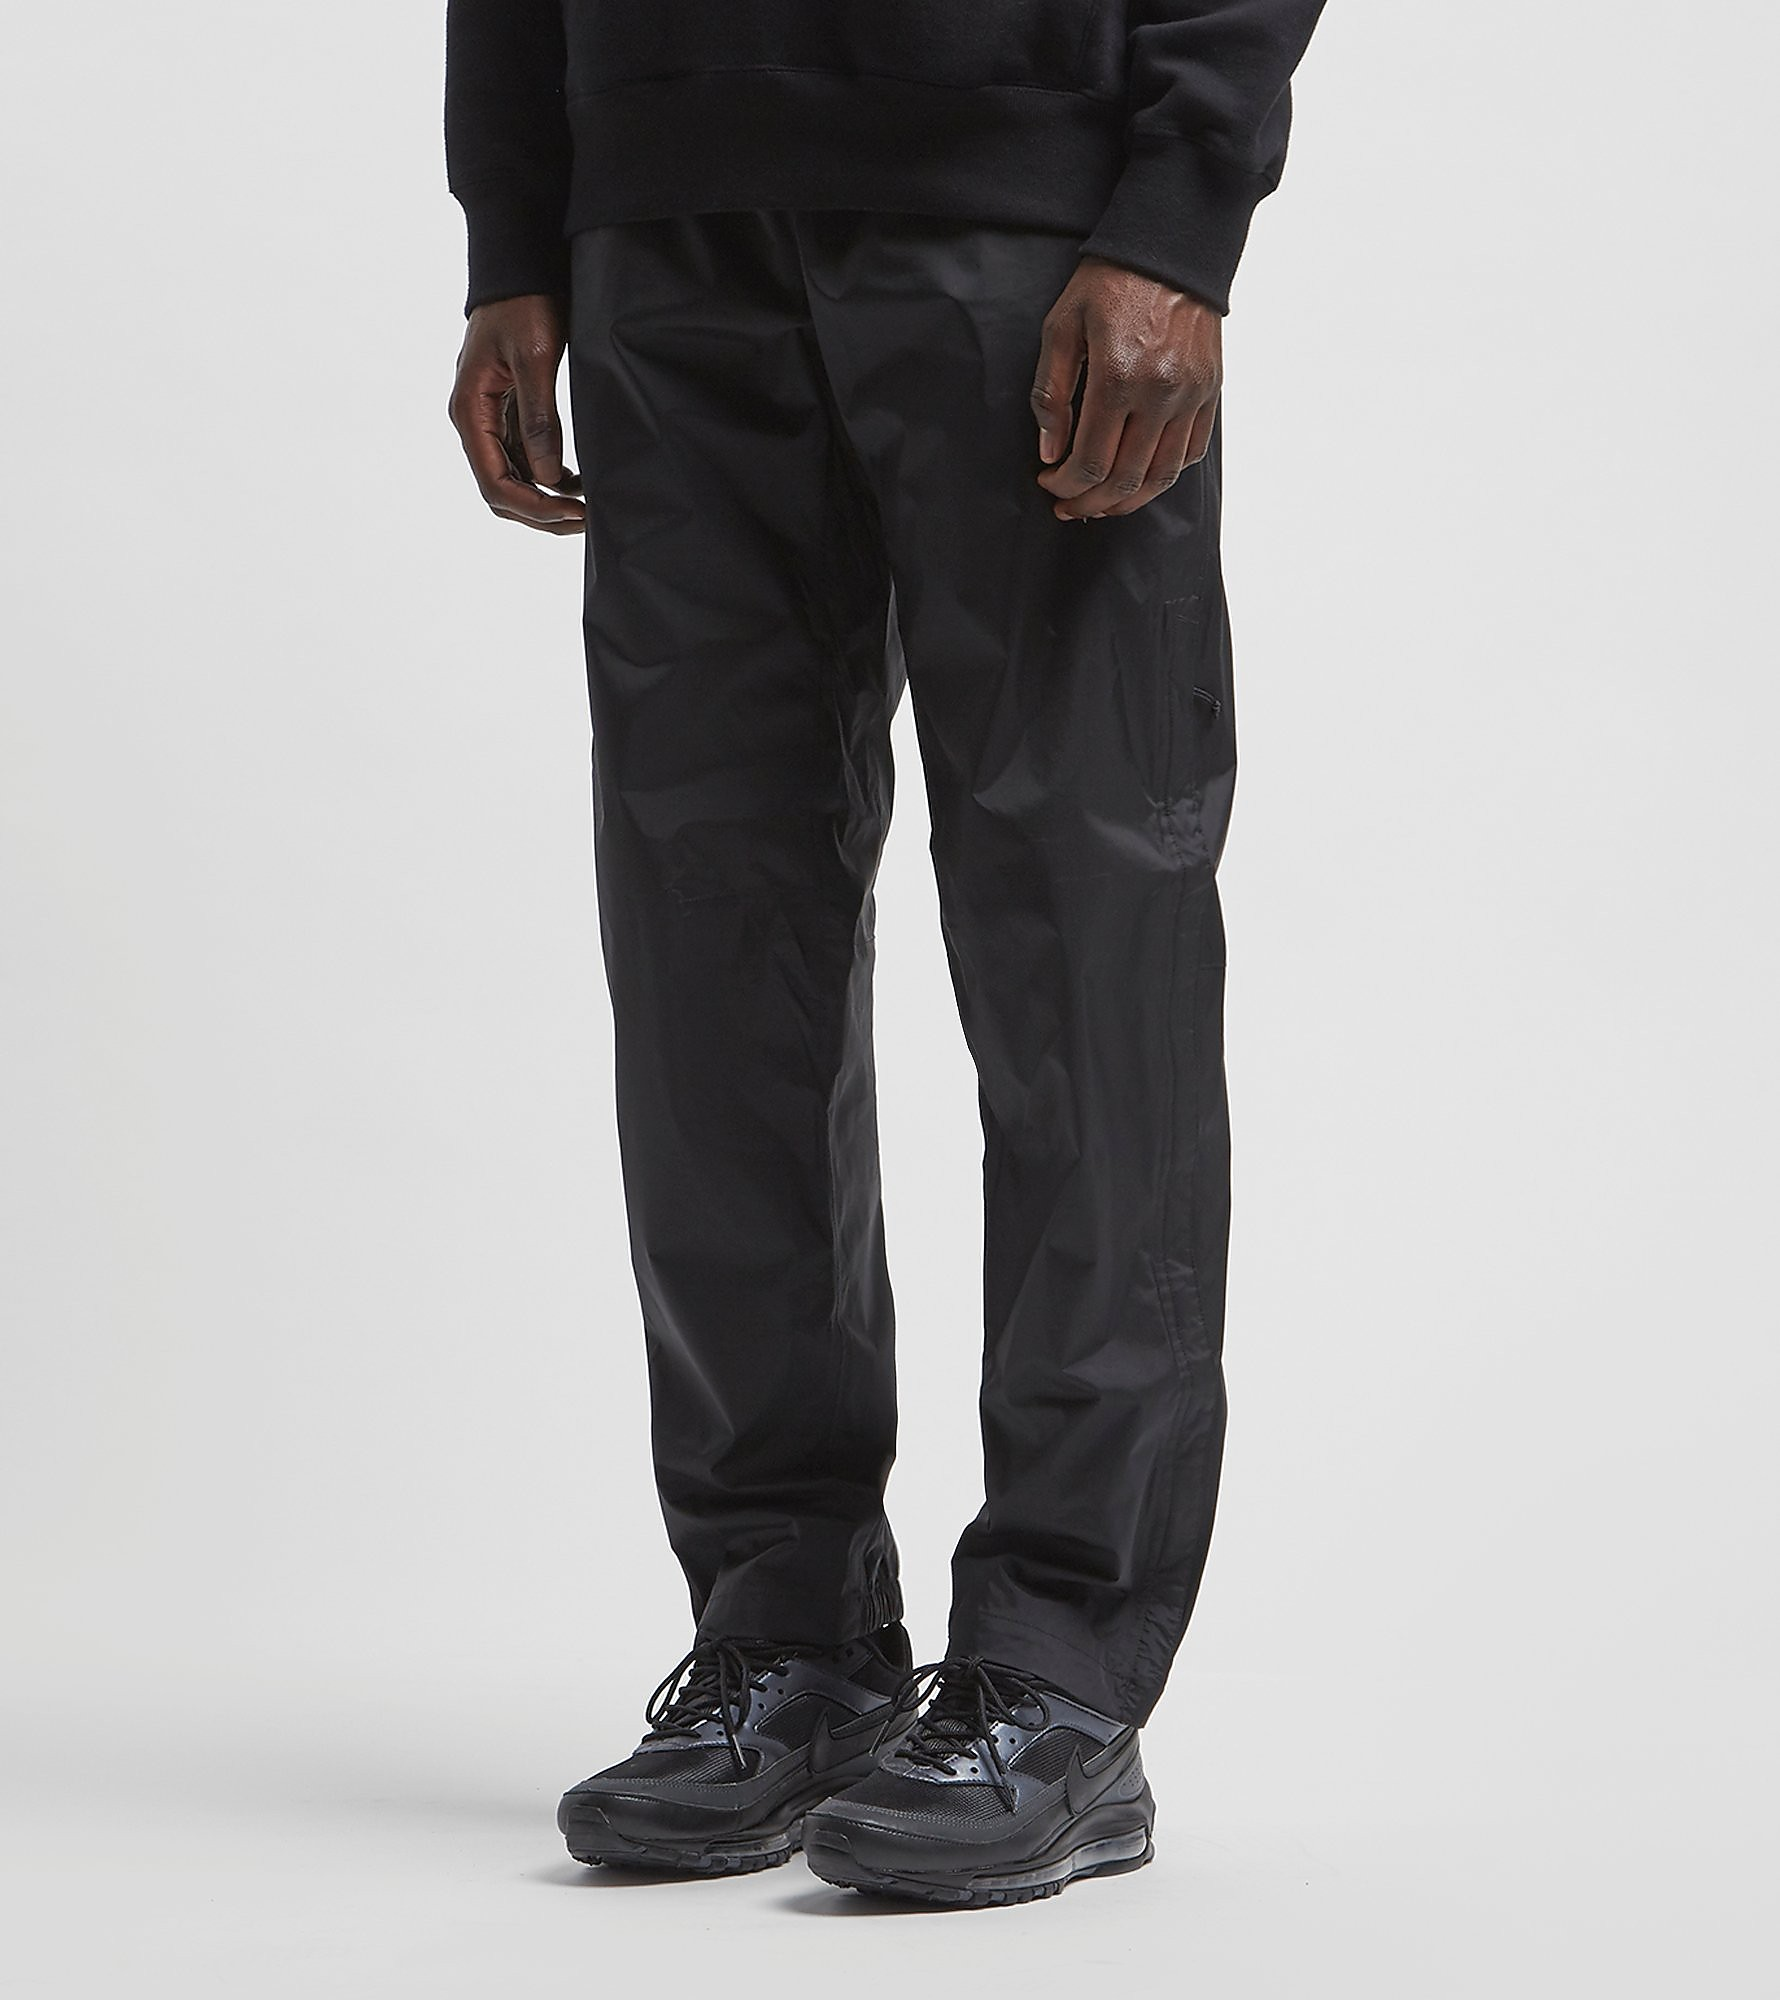 Patagonia Torrent Shell Pants